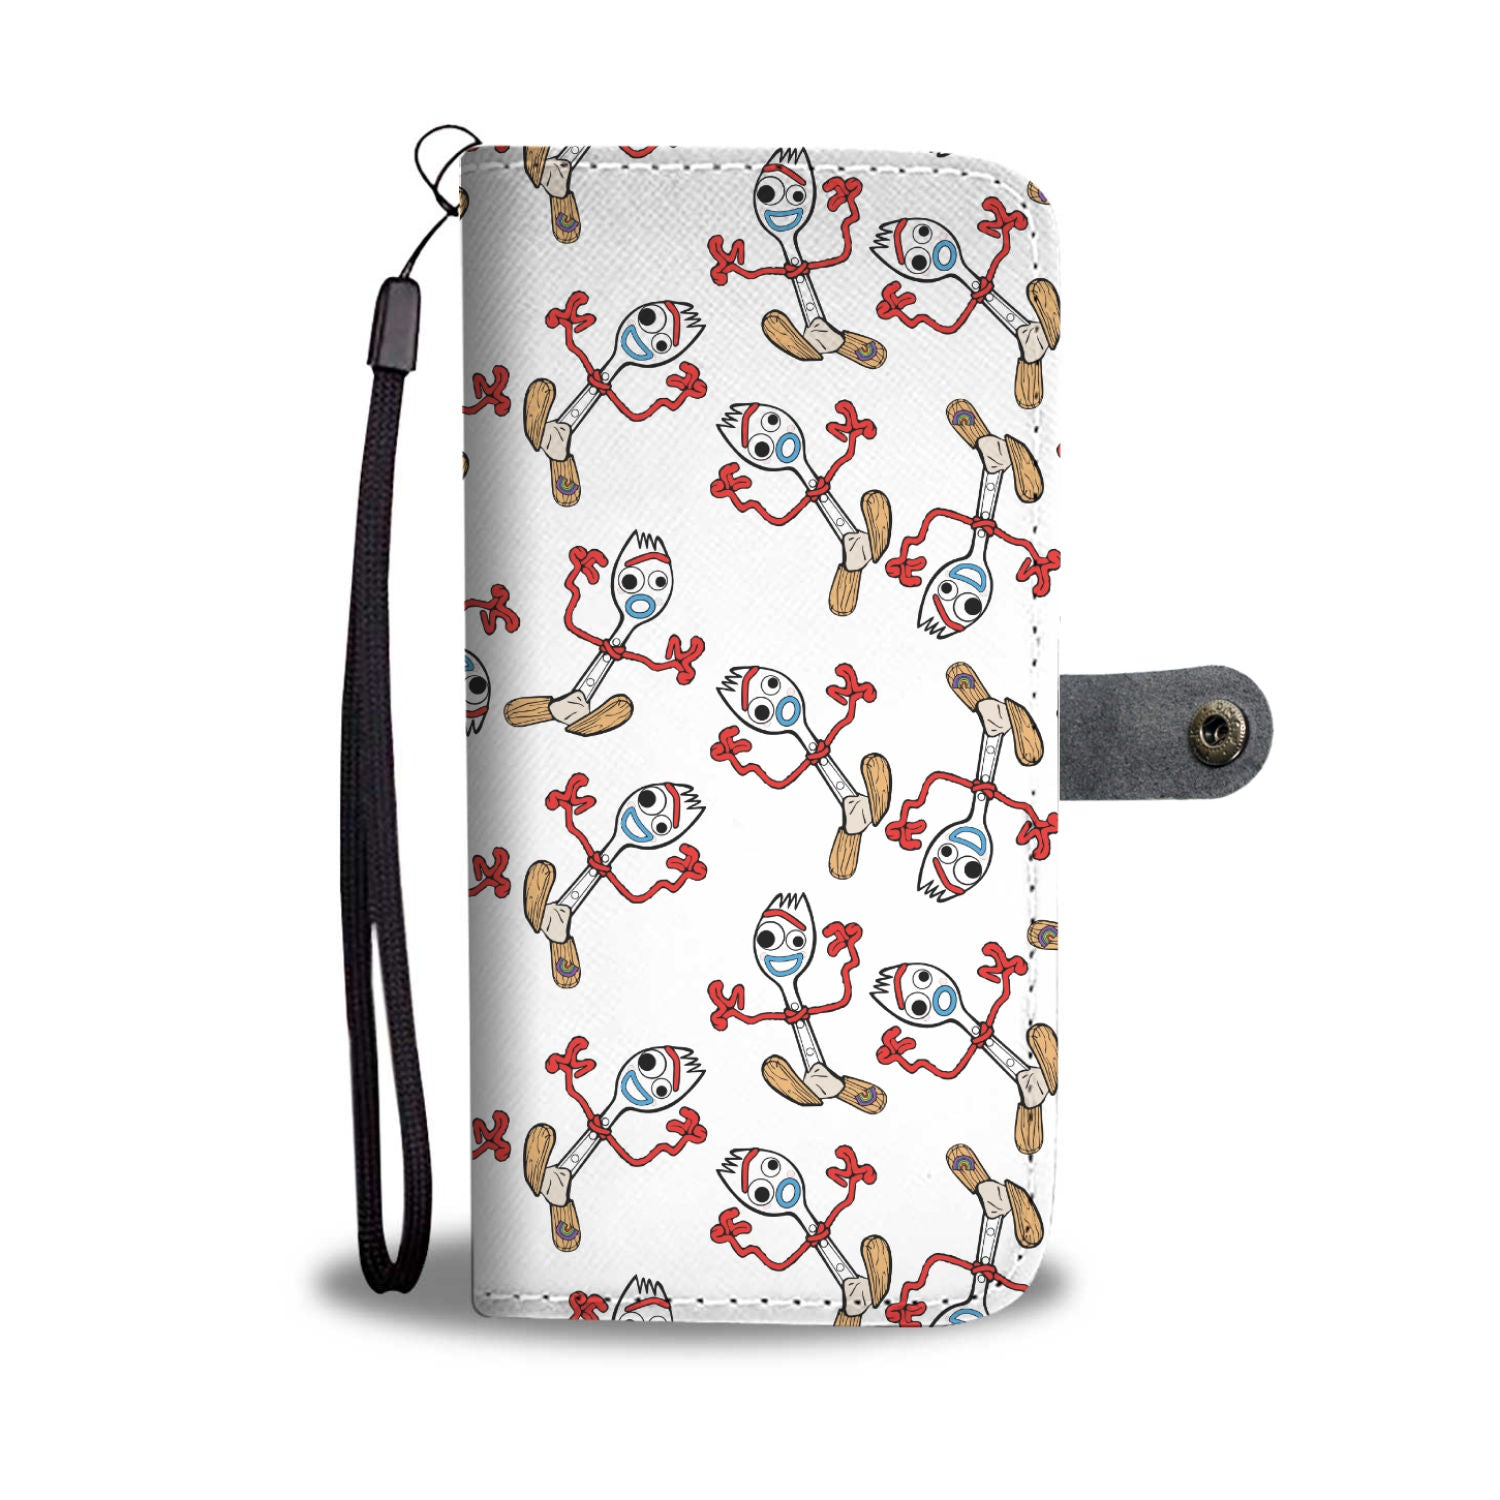 Forky Phone Wallet Case